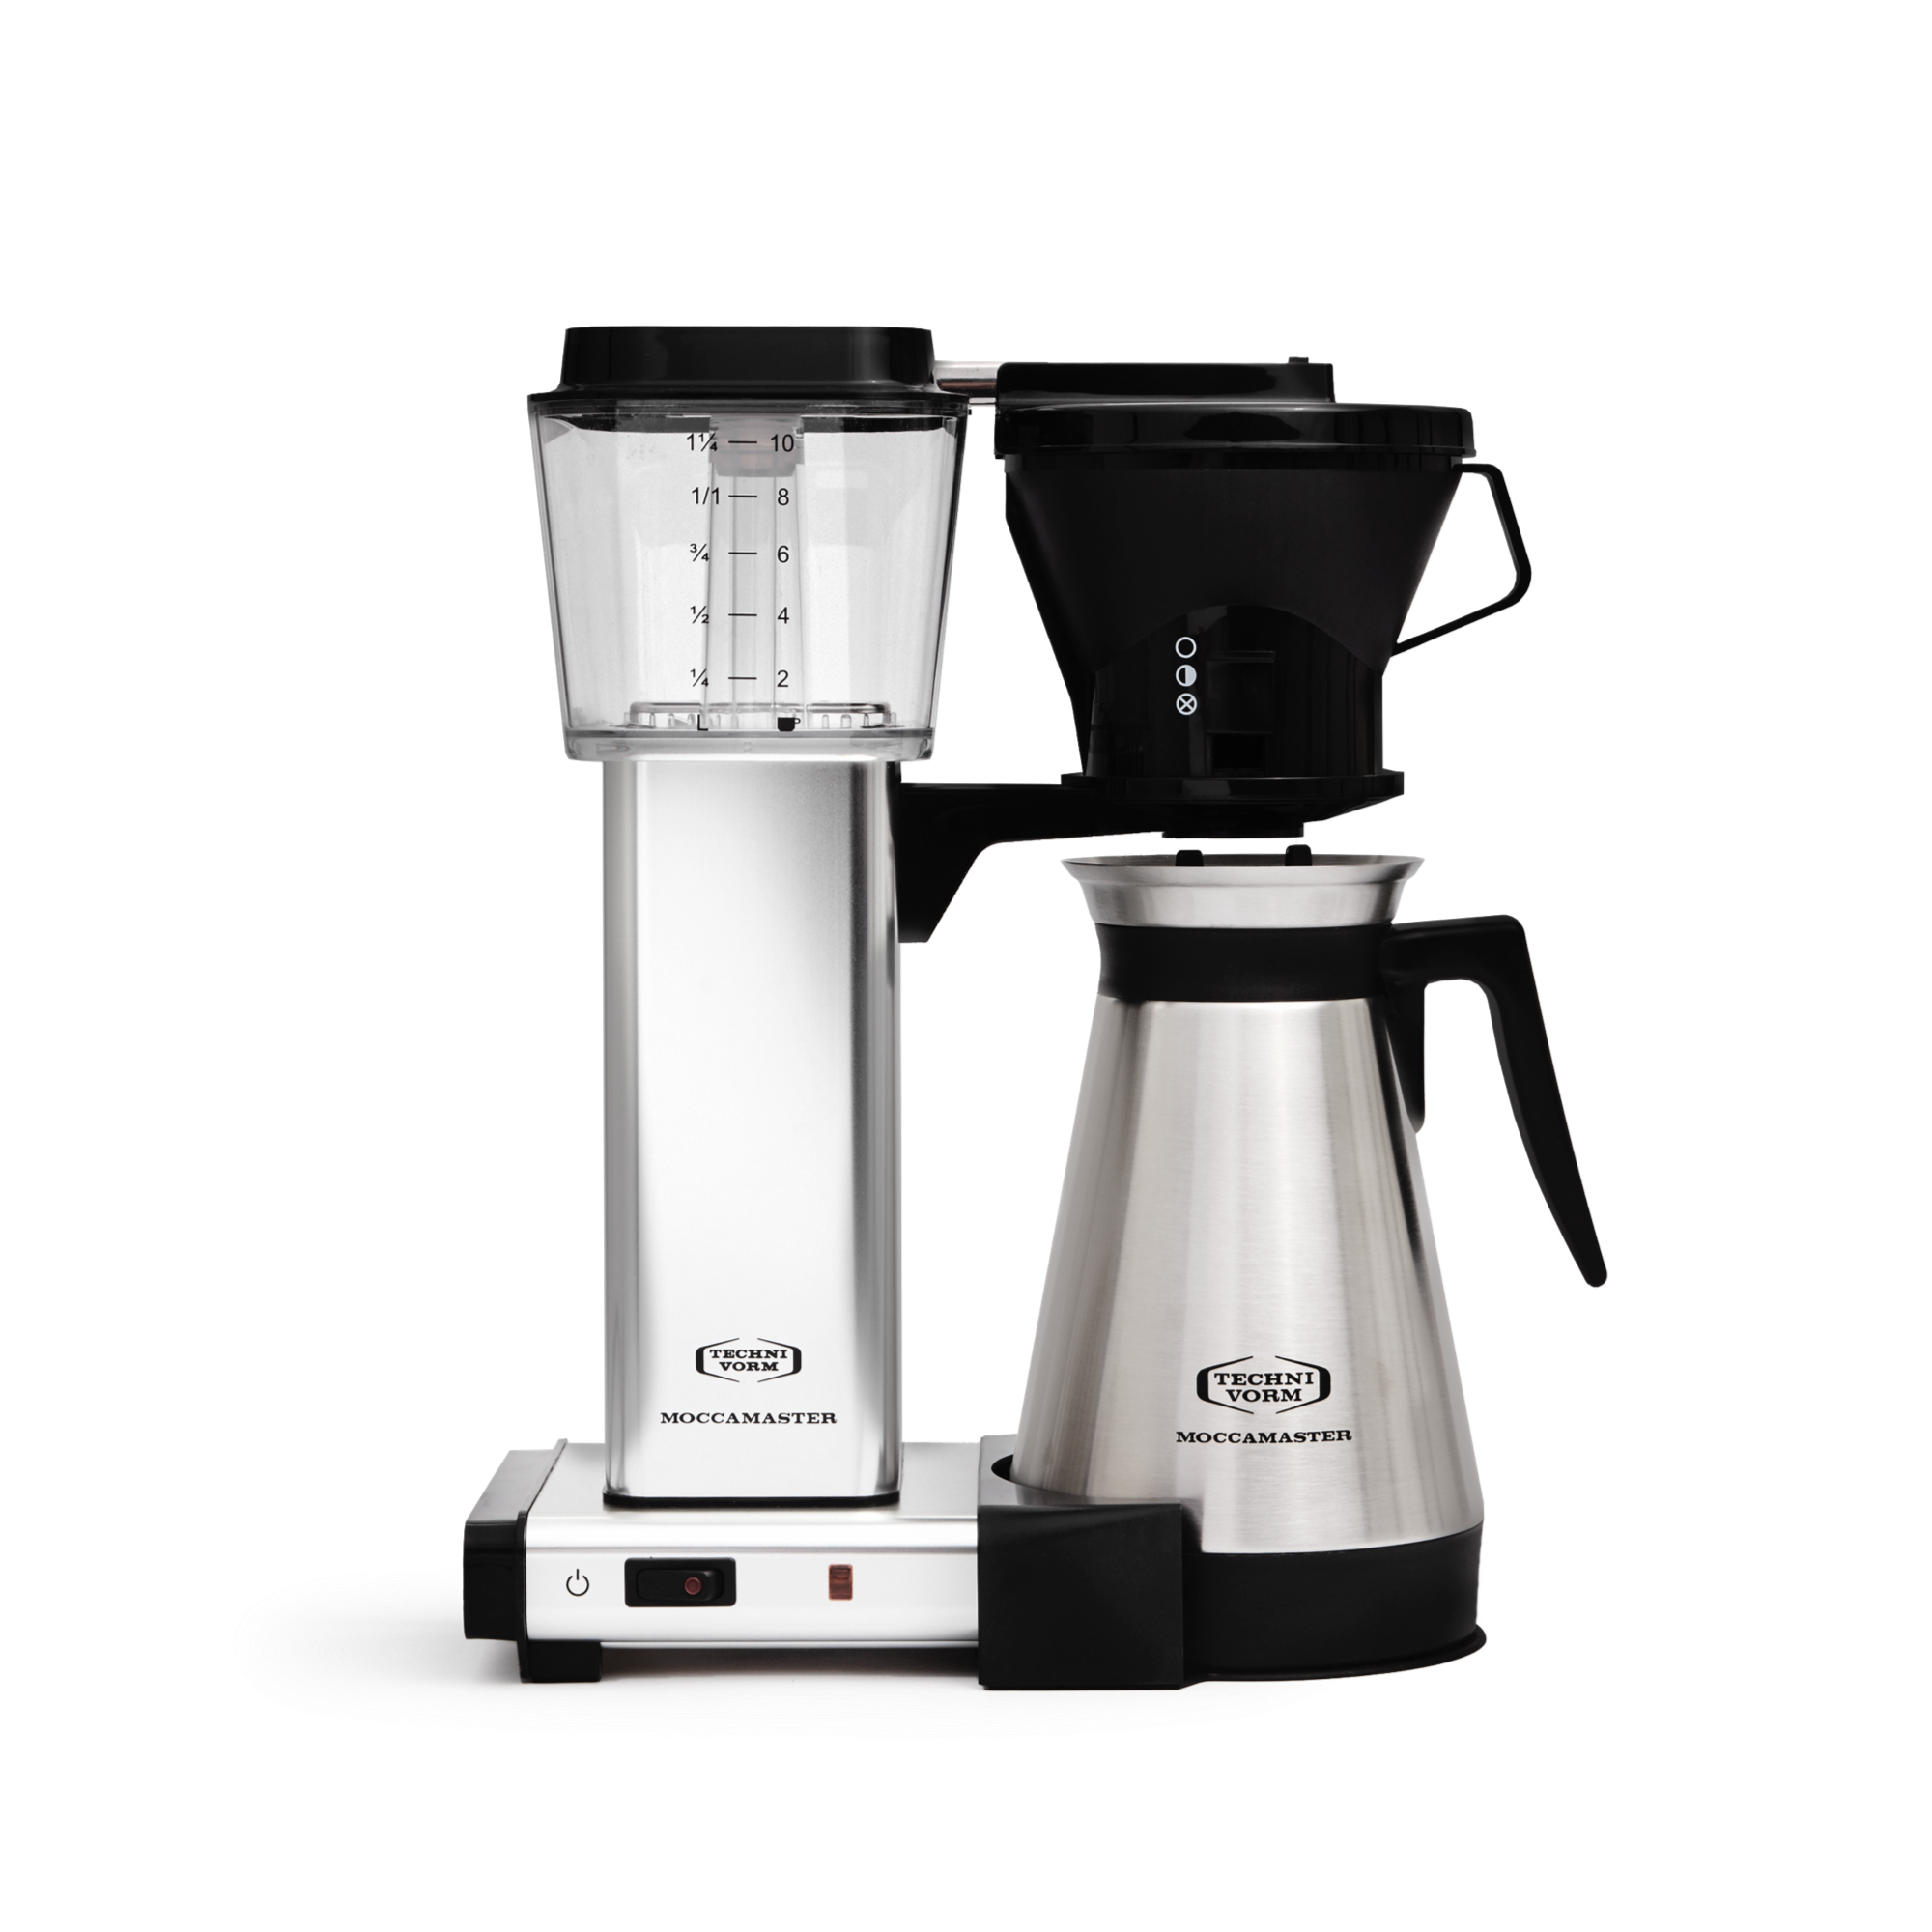 Best Coffee Makers For Every Brewing Method